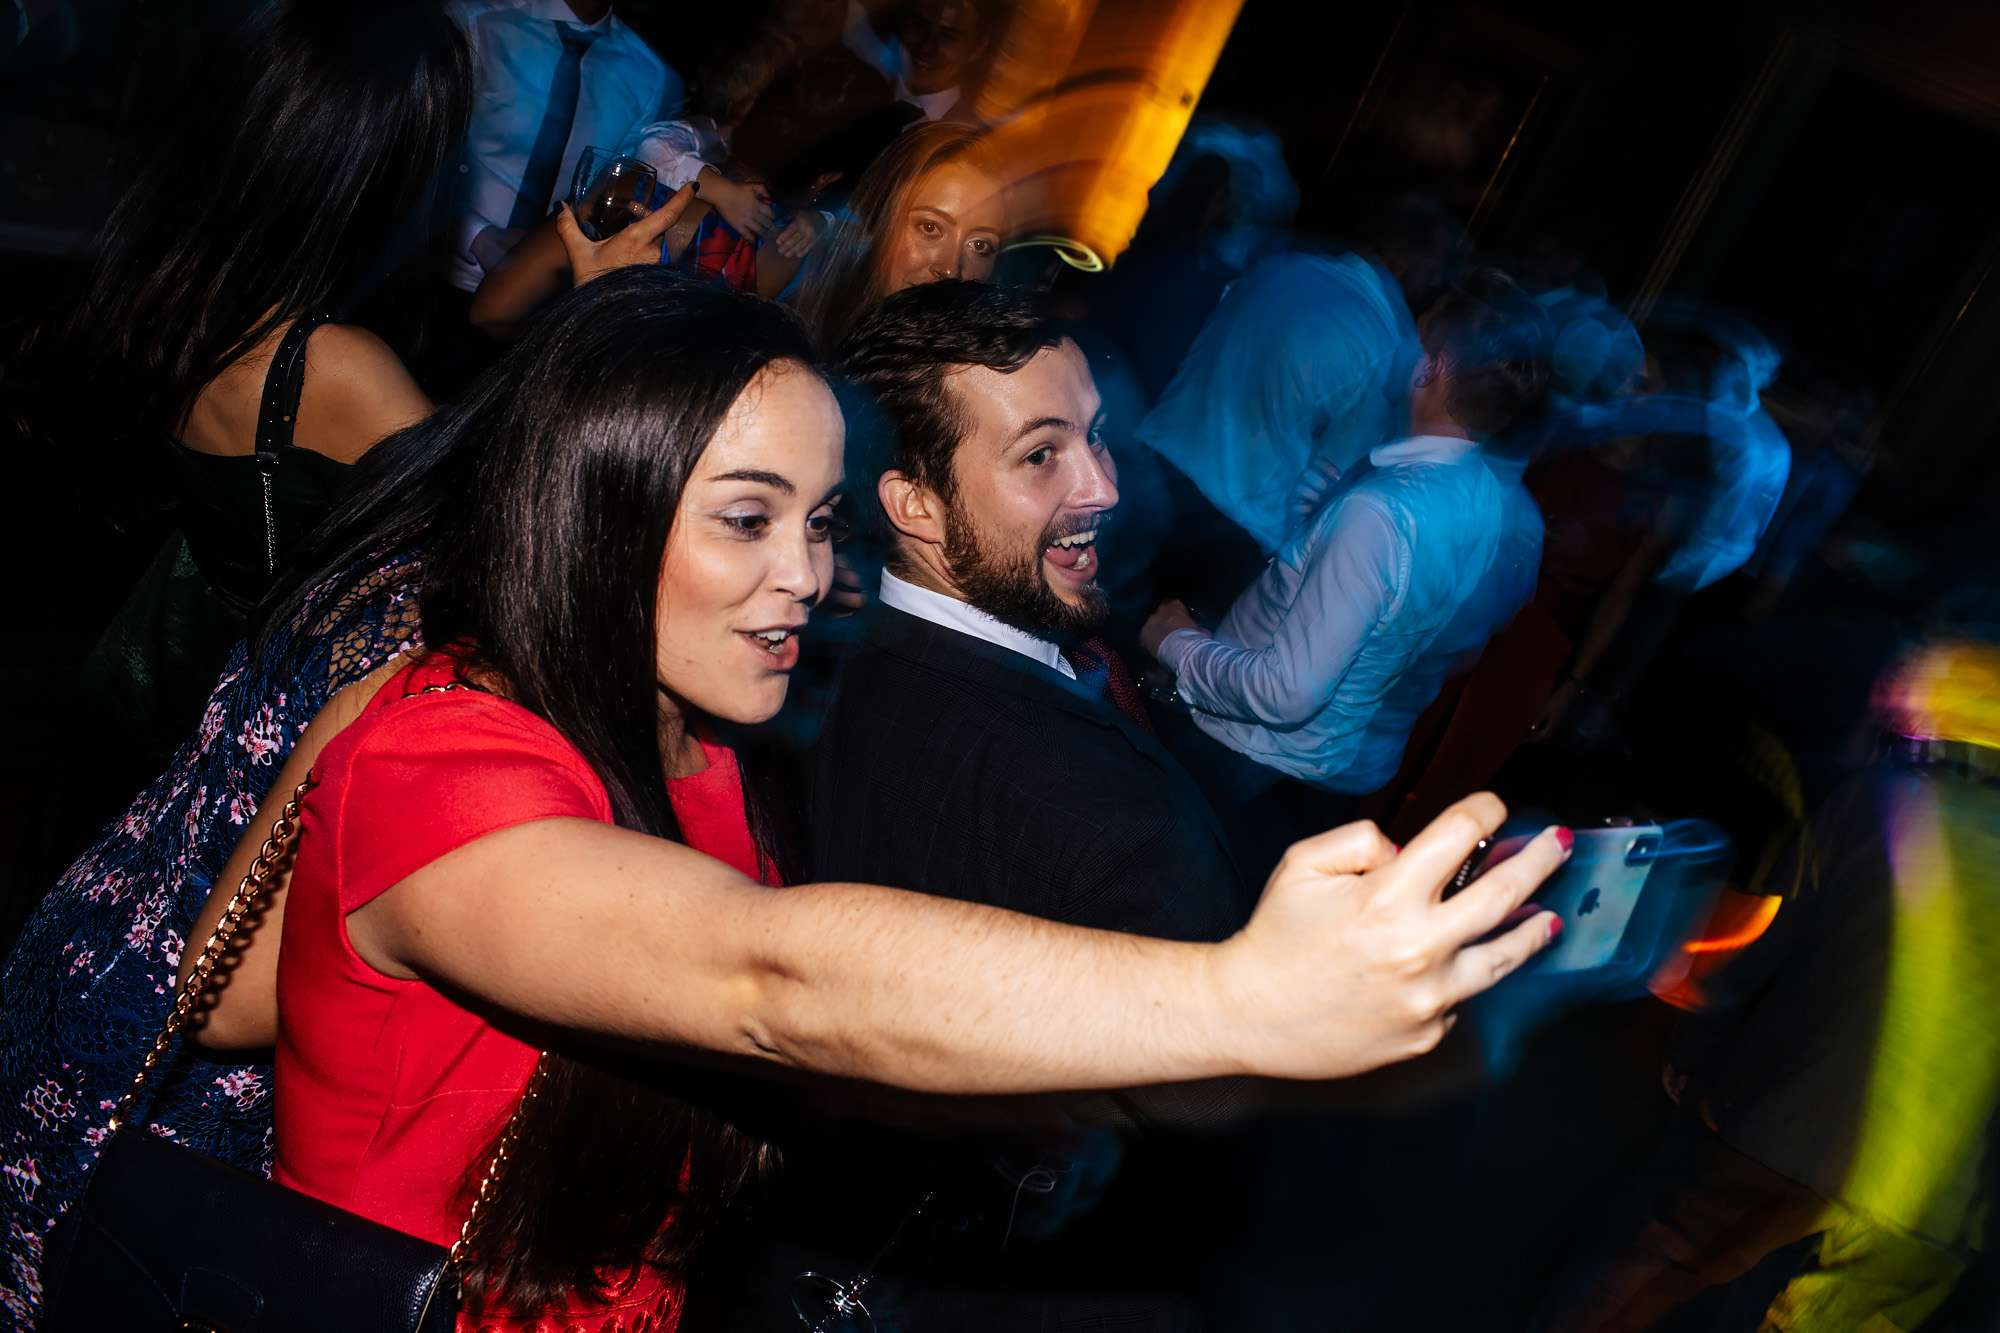 Wedding guests taking selfies and laughing